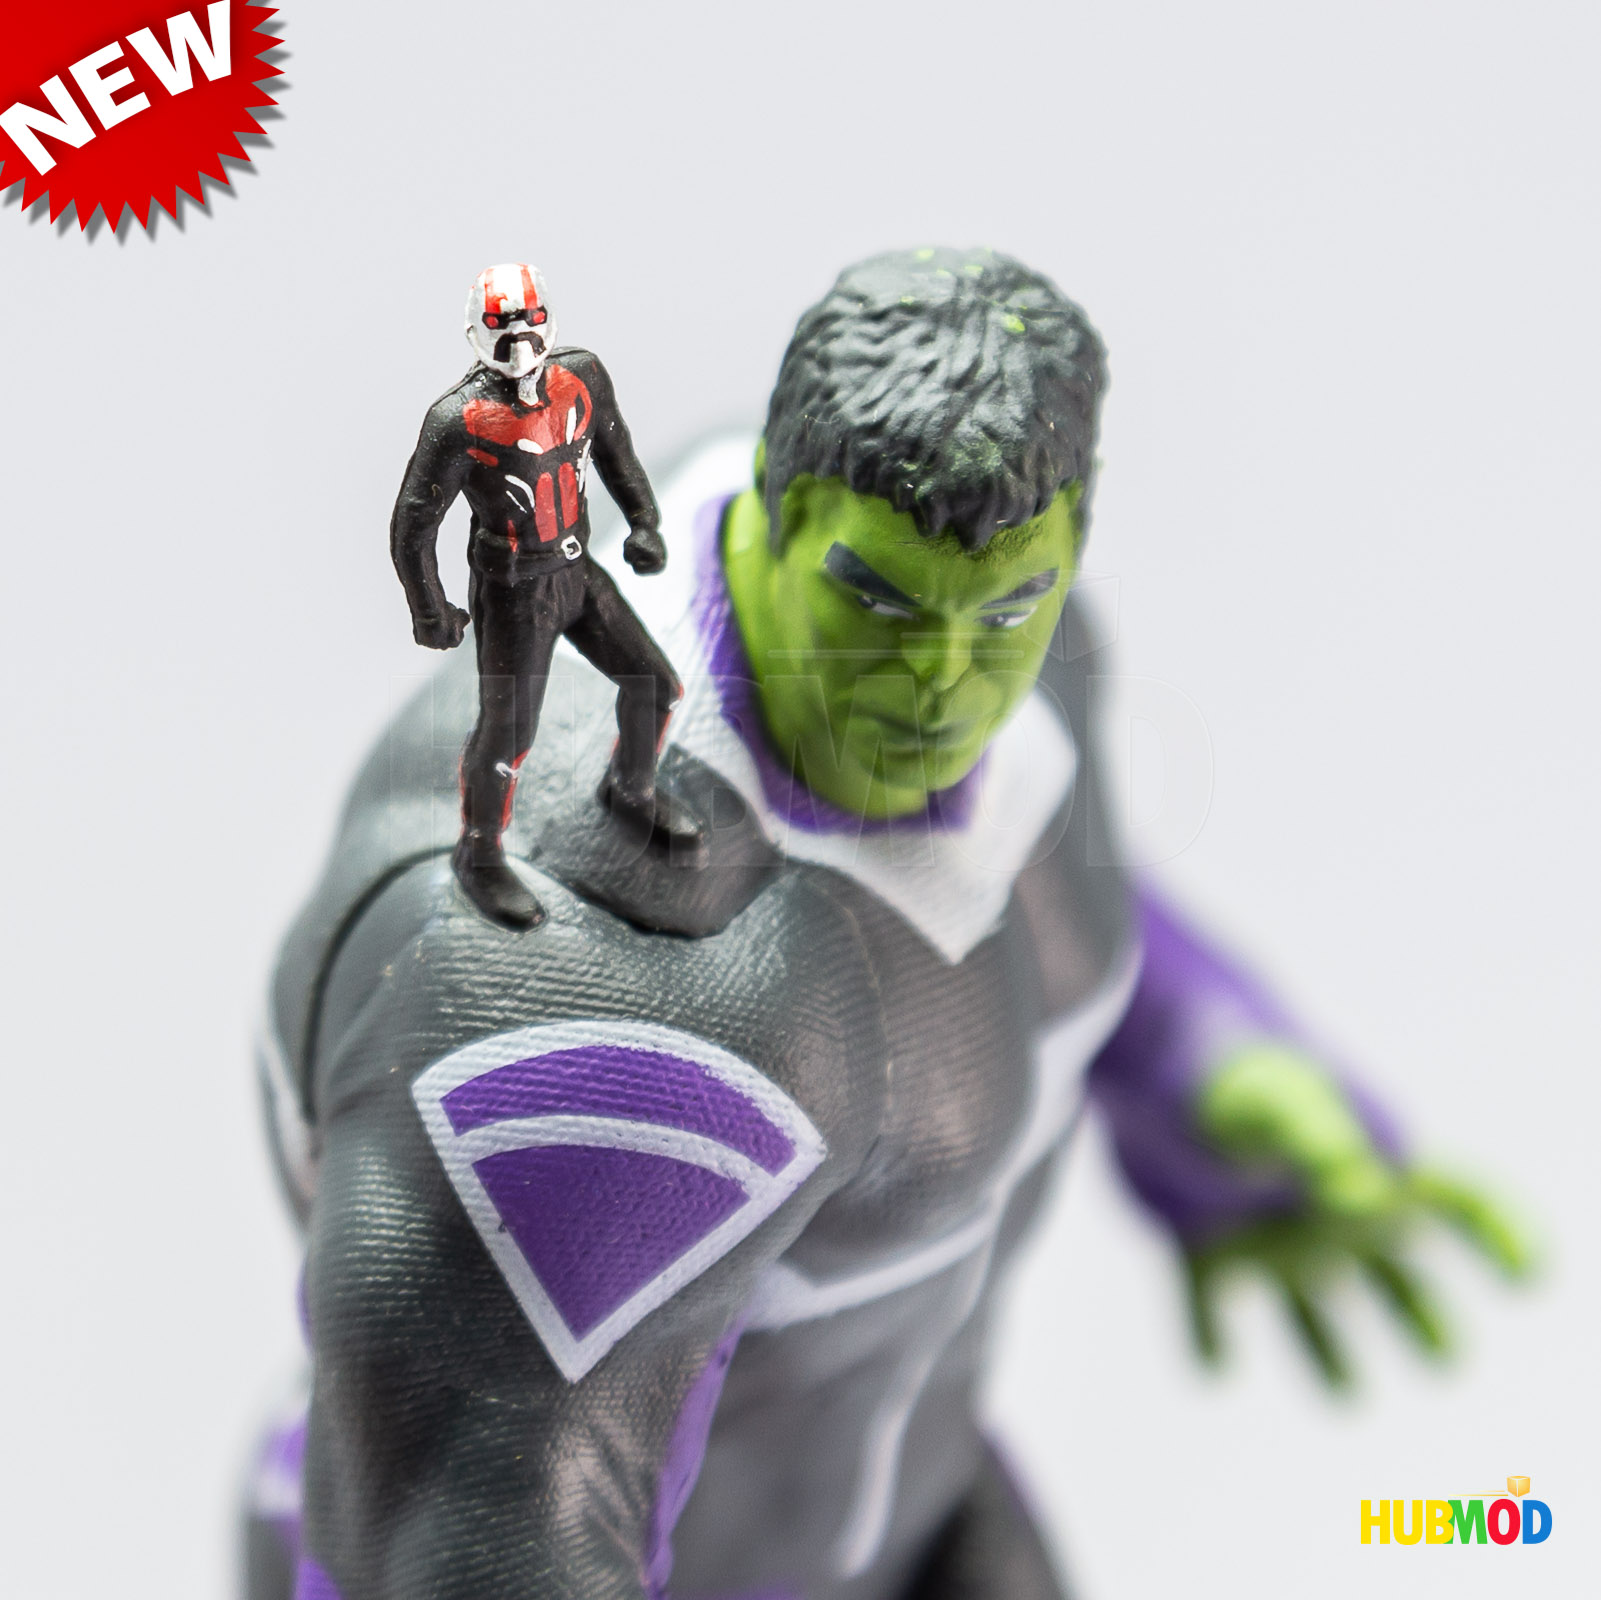 Disney Store ANT-MAN /& THE WASP FIGURINE Cake TOPPER AVENGERS Marvel Toy NEW